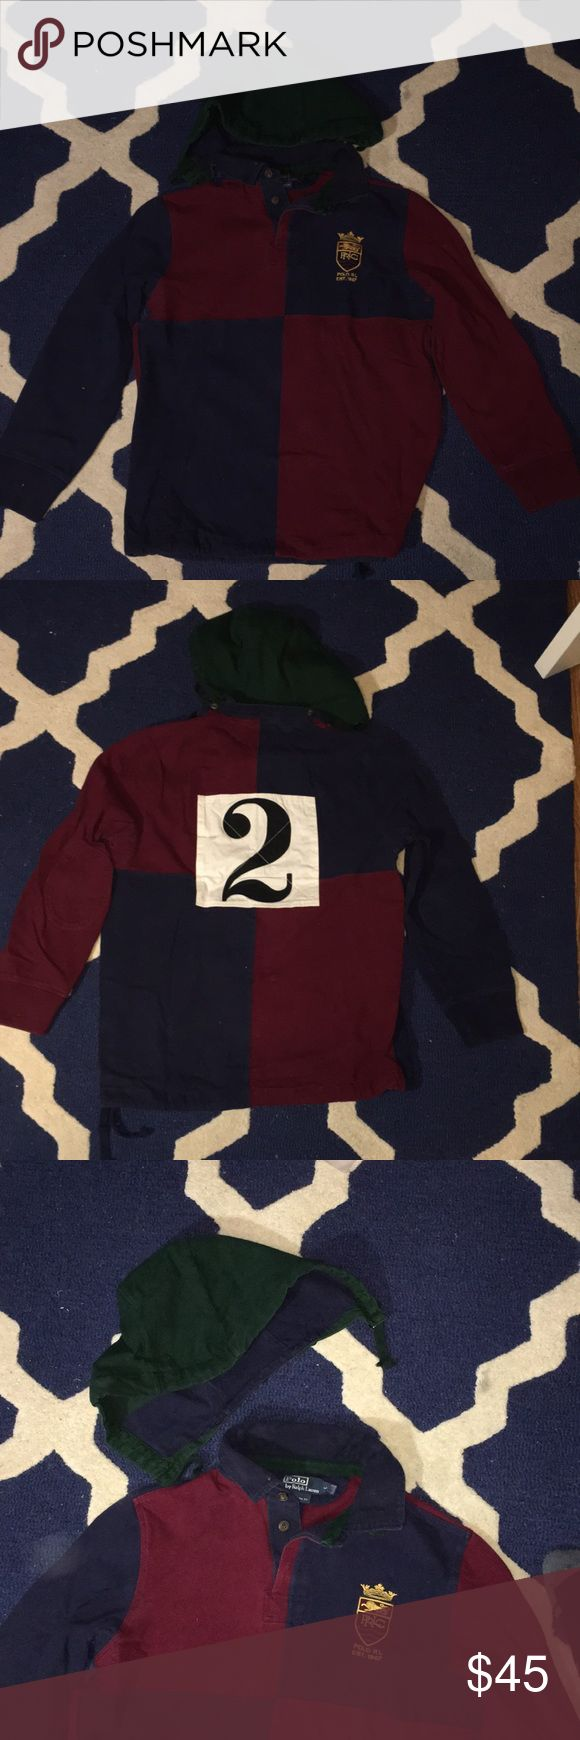 Polo Ralph Lauren Long Sleeve Polo Ralph Lauren long sleeve rugby shirt with detachable hood. Shirt is made of heavy quality material and was lightly worn still in great condition. Size L Ralph Lauren Shirts Tees - Long Sleeve